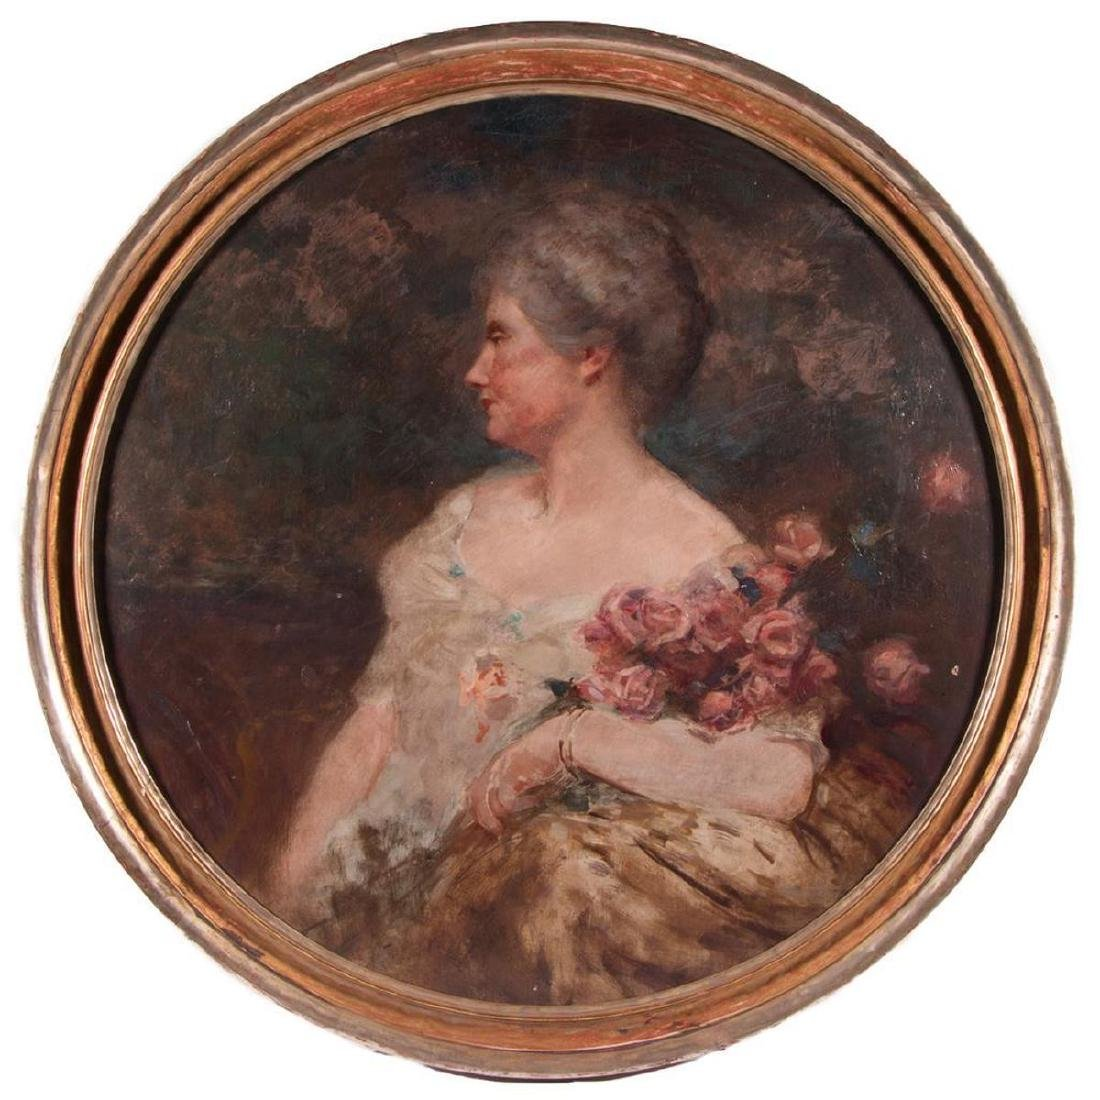 Portrait of Phoebe Hearst. Attributed to Orrin Peck